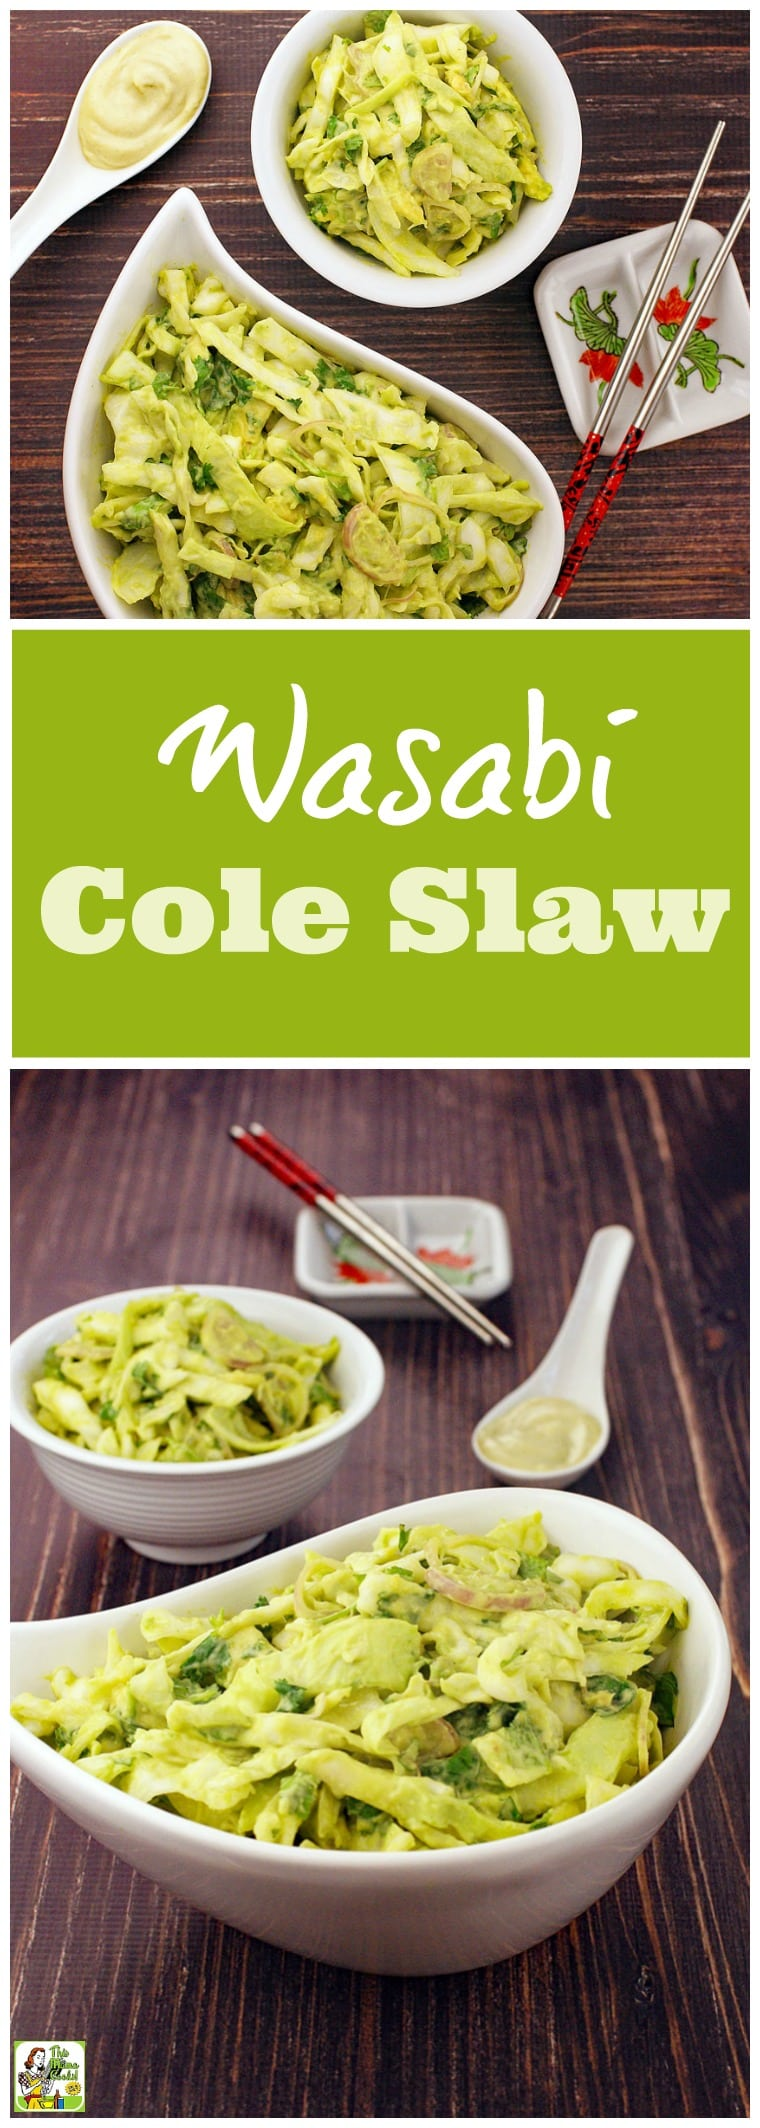 Tired of basic coleslaw recipes? Try this Wasabi Cole Slaw recipe! Click to get this Asian coleslaw recipe that's ideal for cookouts, potlucks and bbq parties. It's gluten free and comes with a vegan option. You'll love how this easy coleslaw recipe with avocado and wasabi mayo for summer!